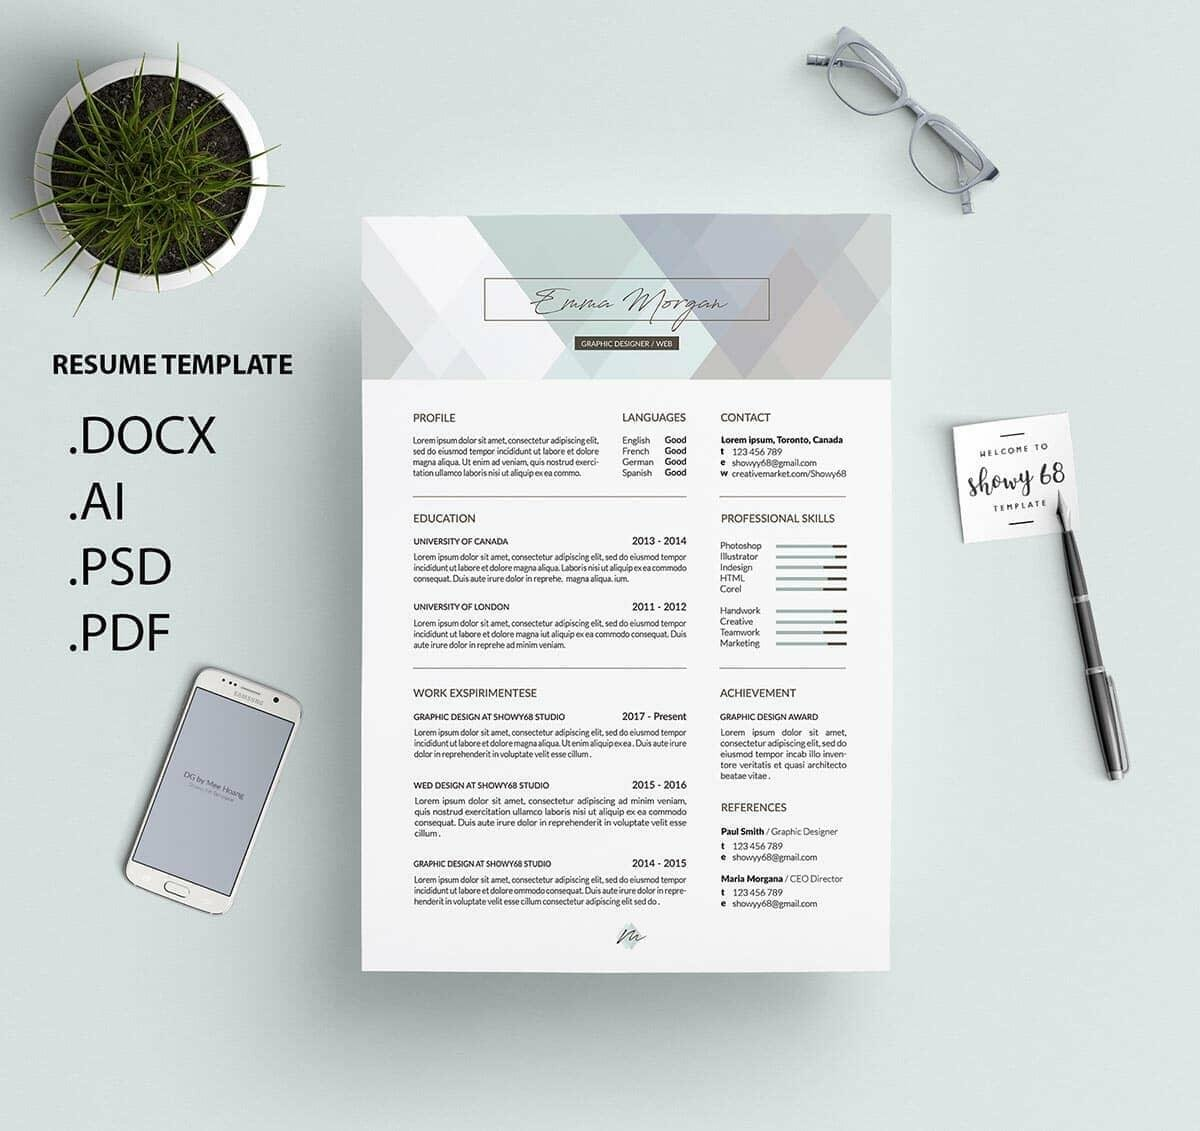 Best Resume Templates Adorable Best Resume Templates 48 Examples To Download Use Right Away